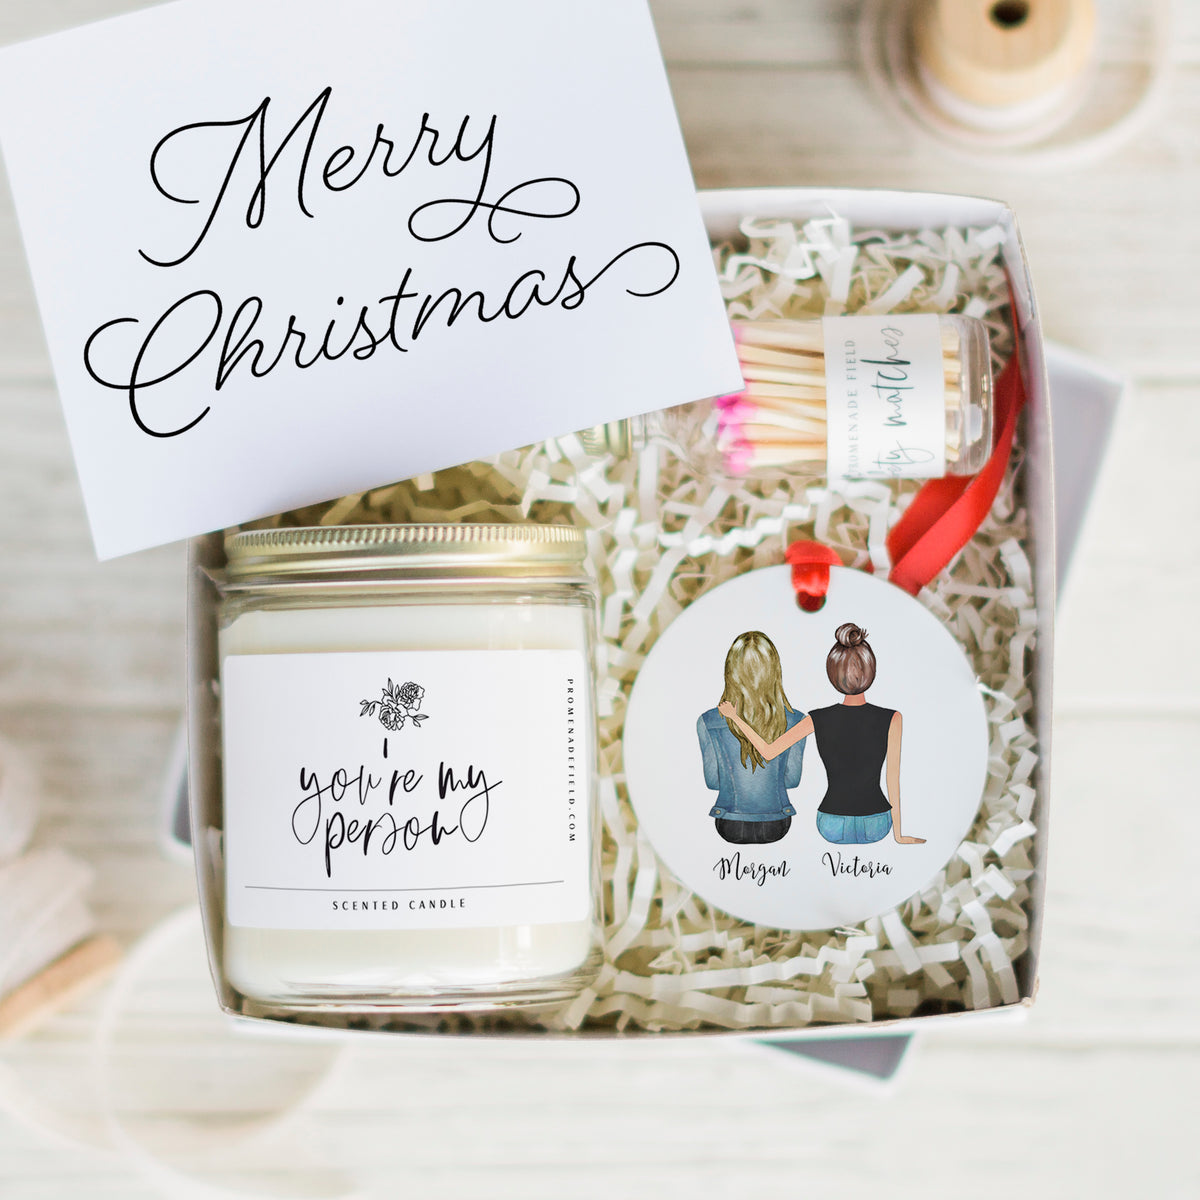 The Portraits Candle & Ornament Gift Set